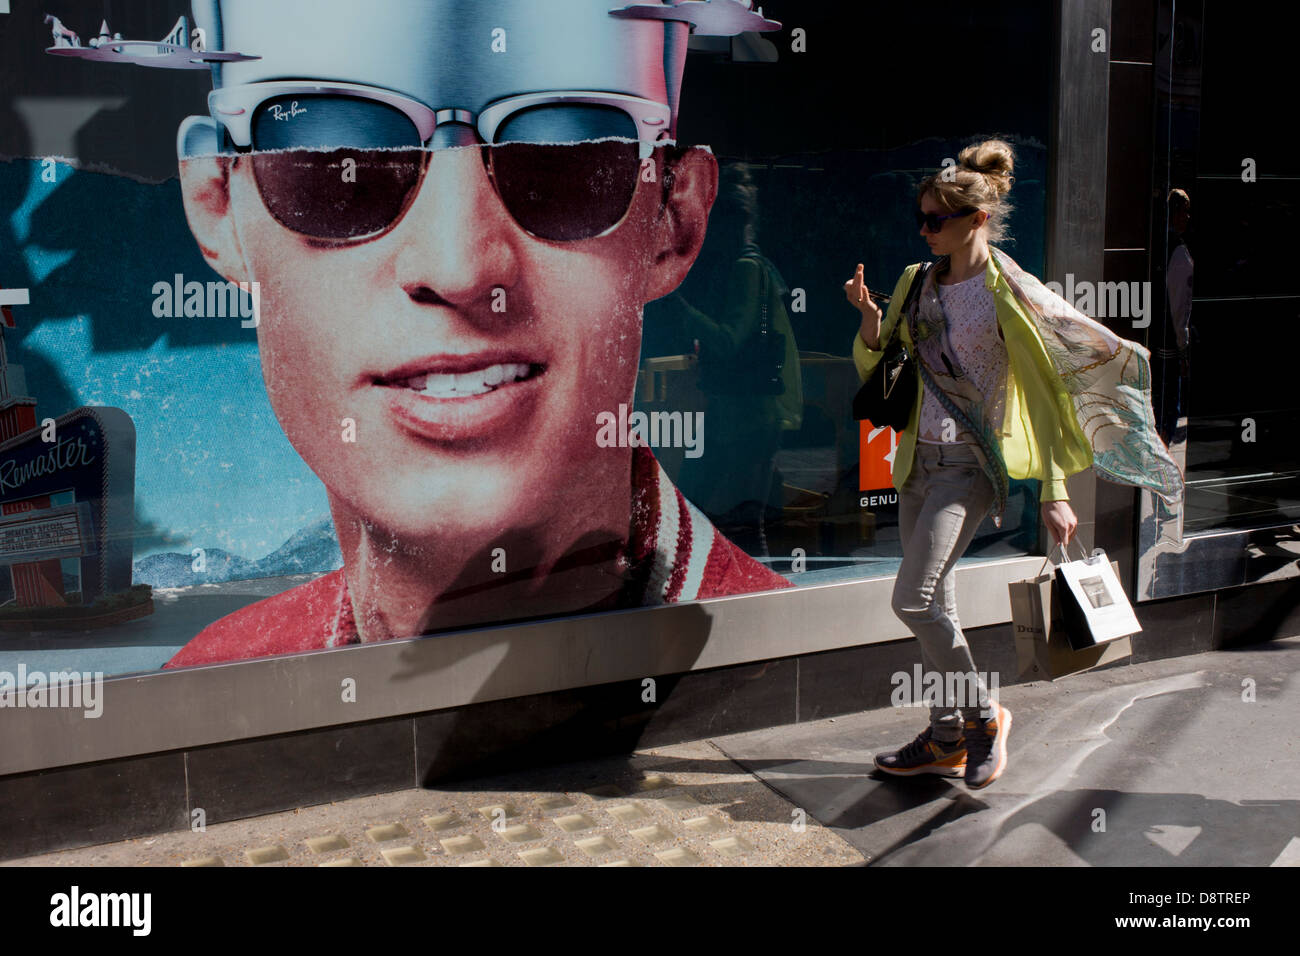 0eecf237c2 A trendy young woman passes-by a poster of a model showing stylish shades  outside